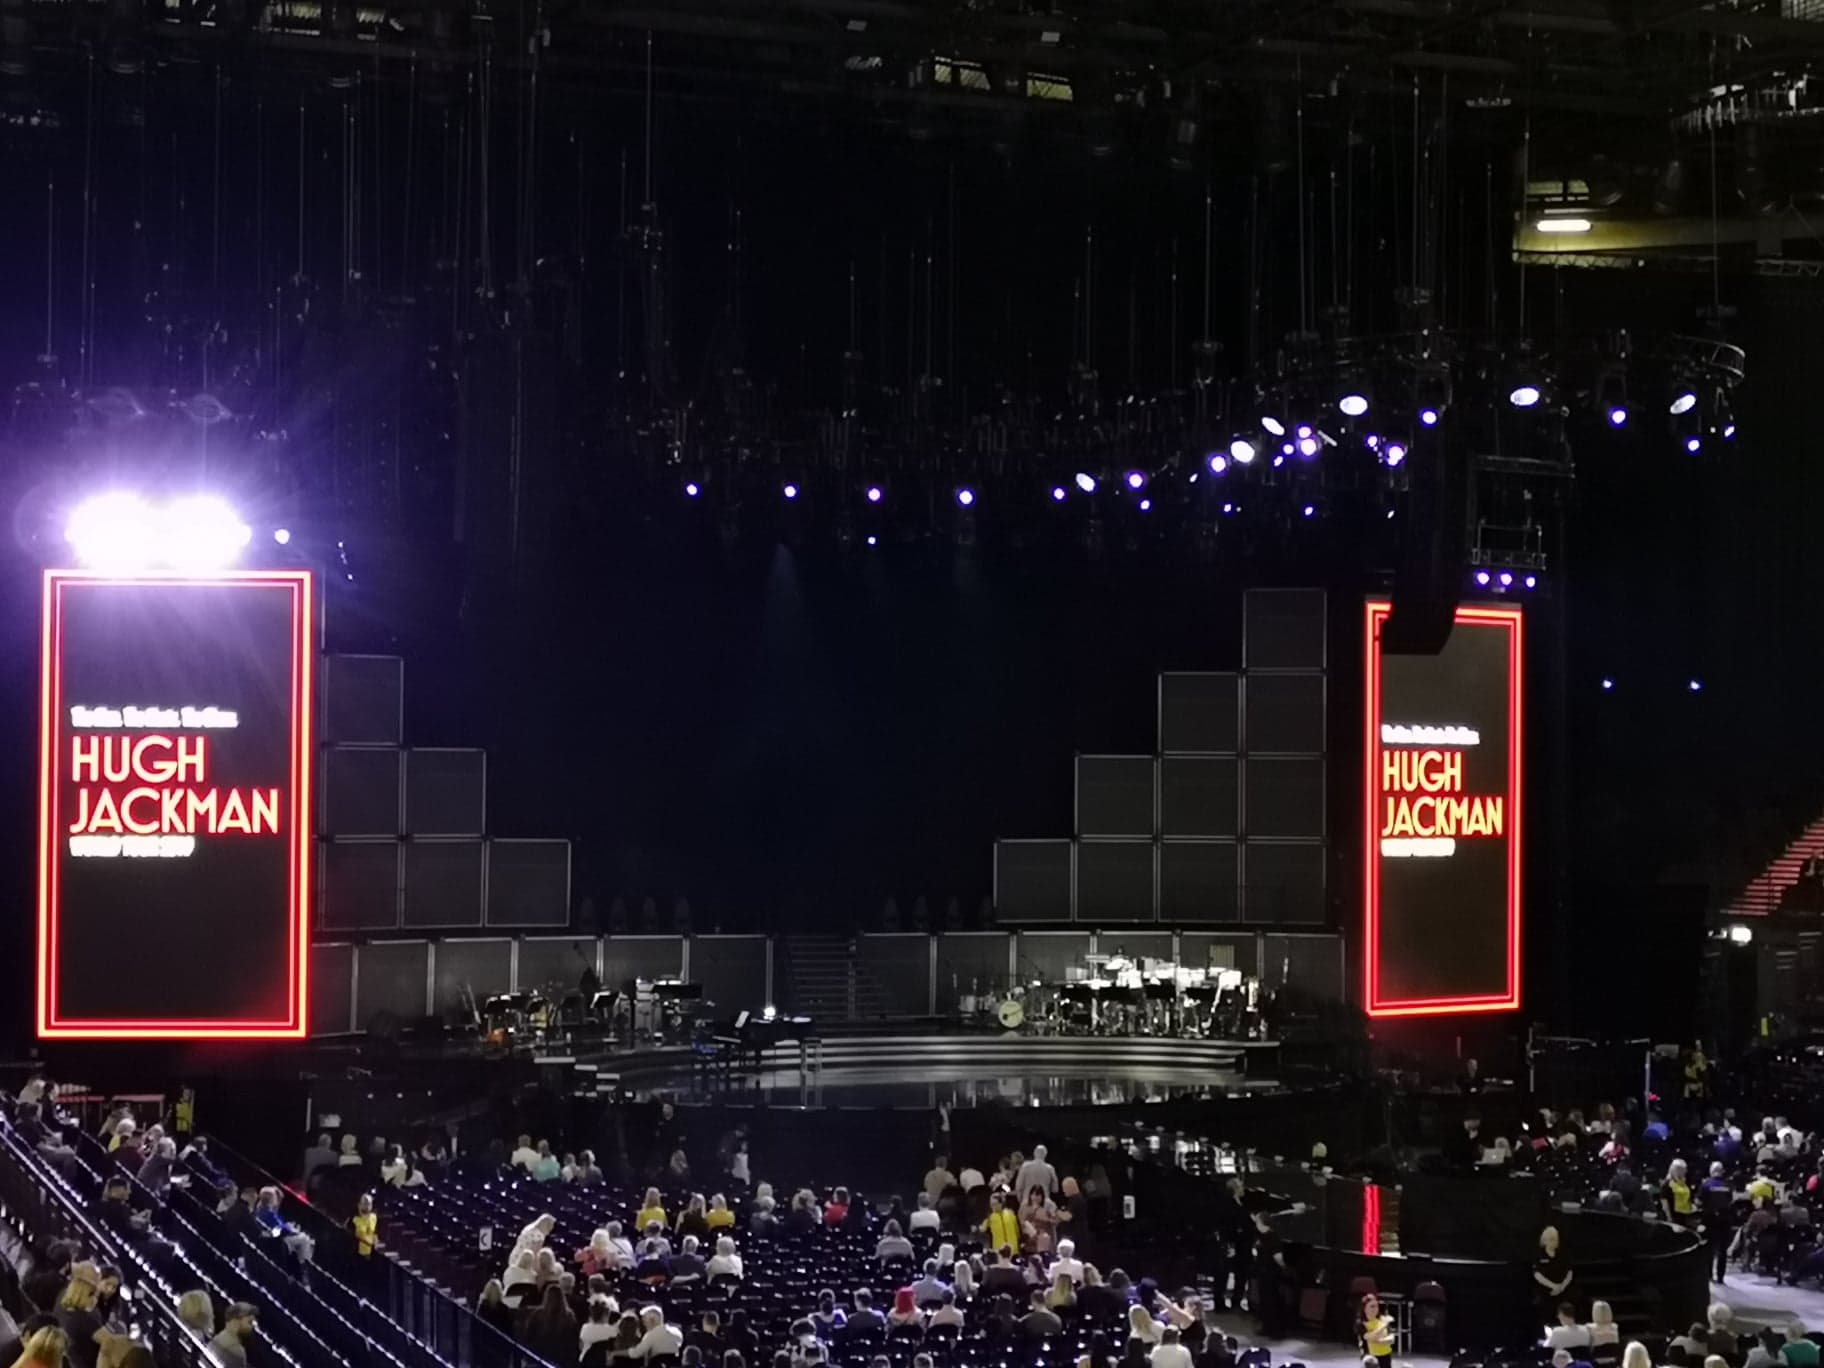 stage before the concert started